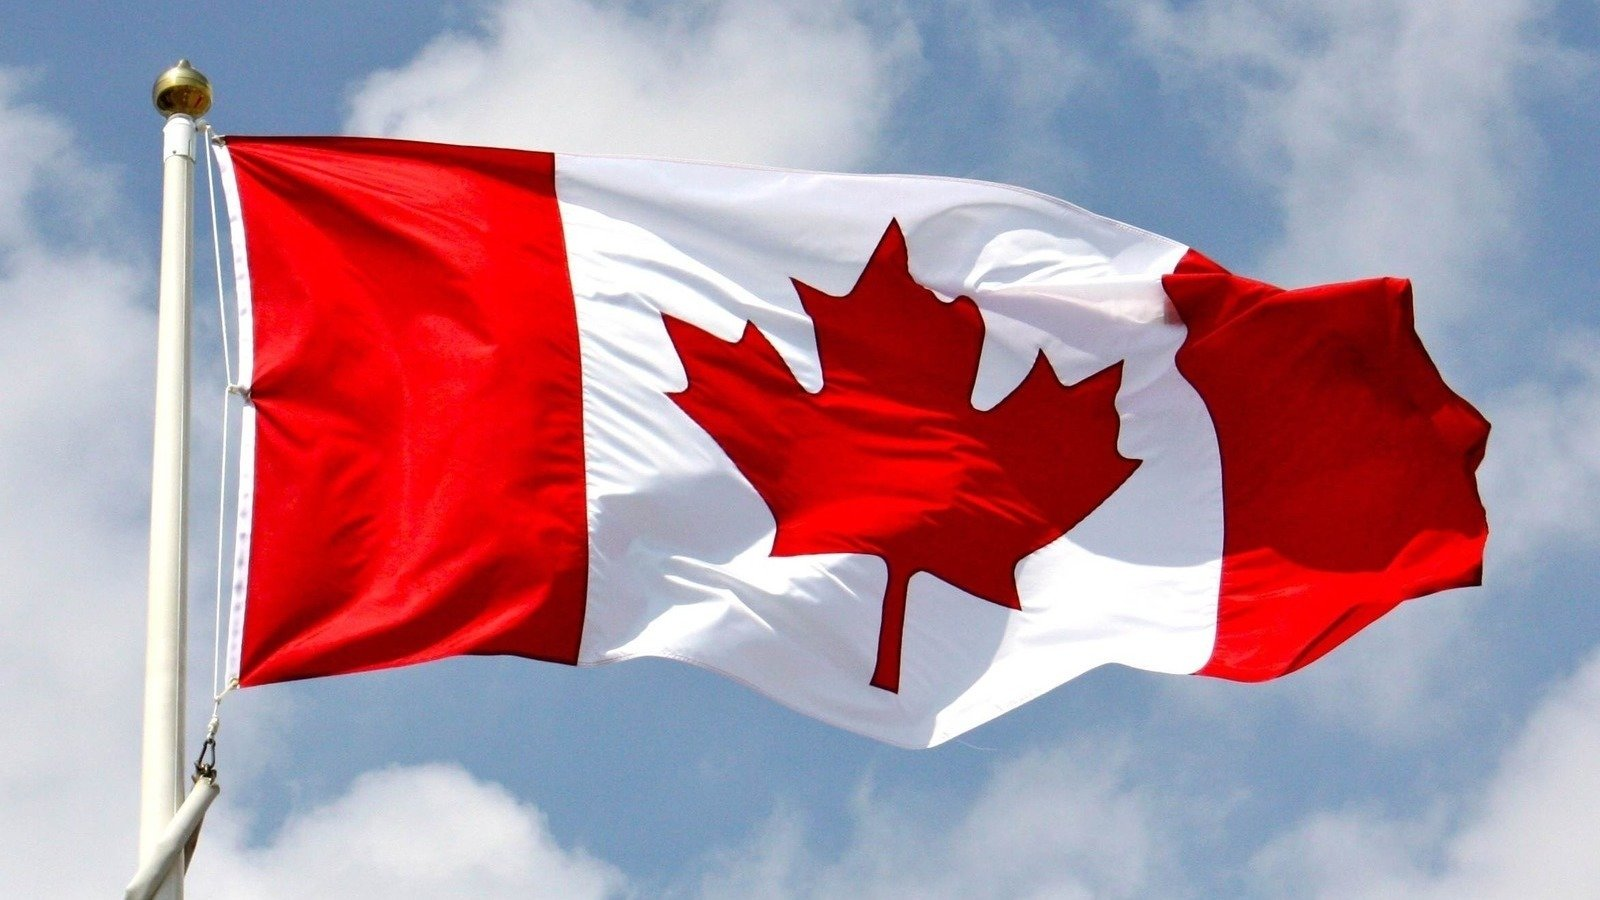 Petition · Put the Canadian flag first · Change.org